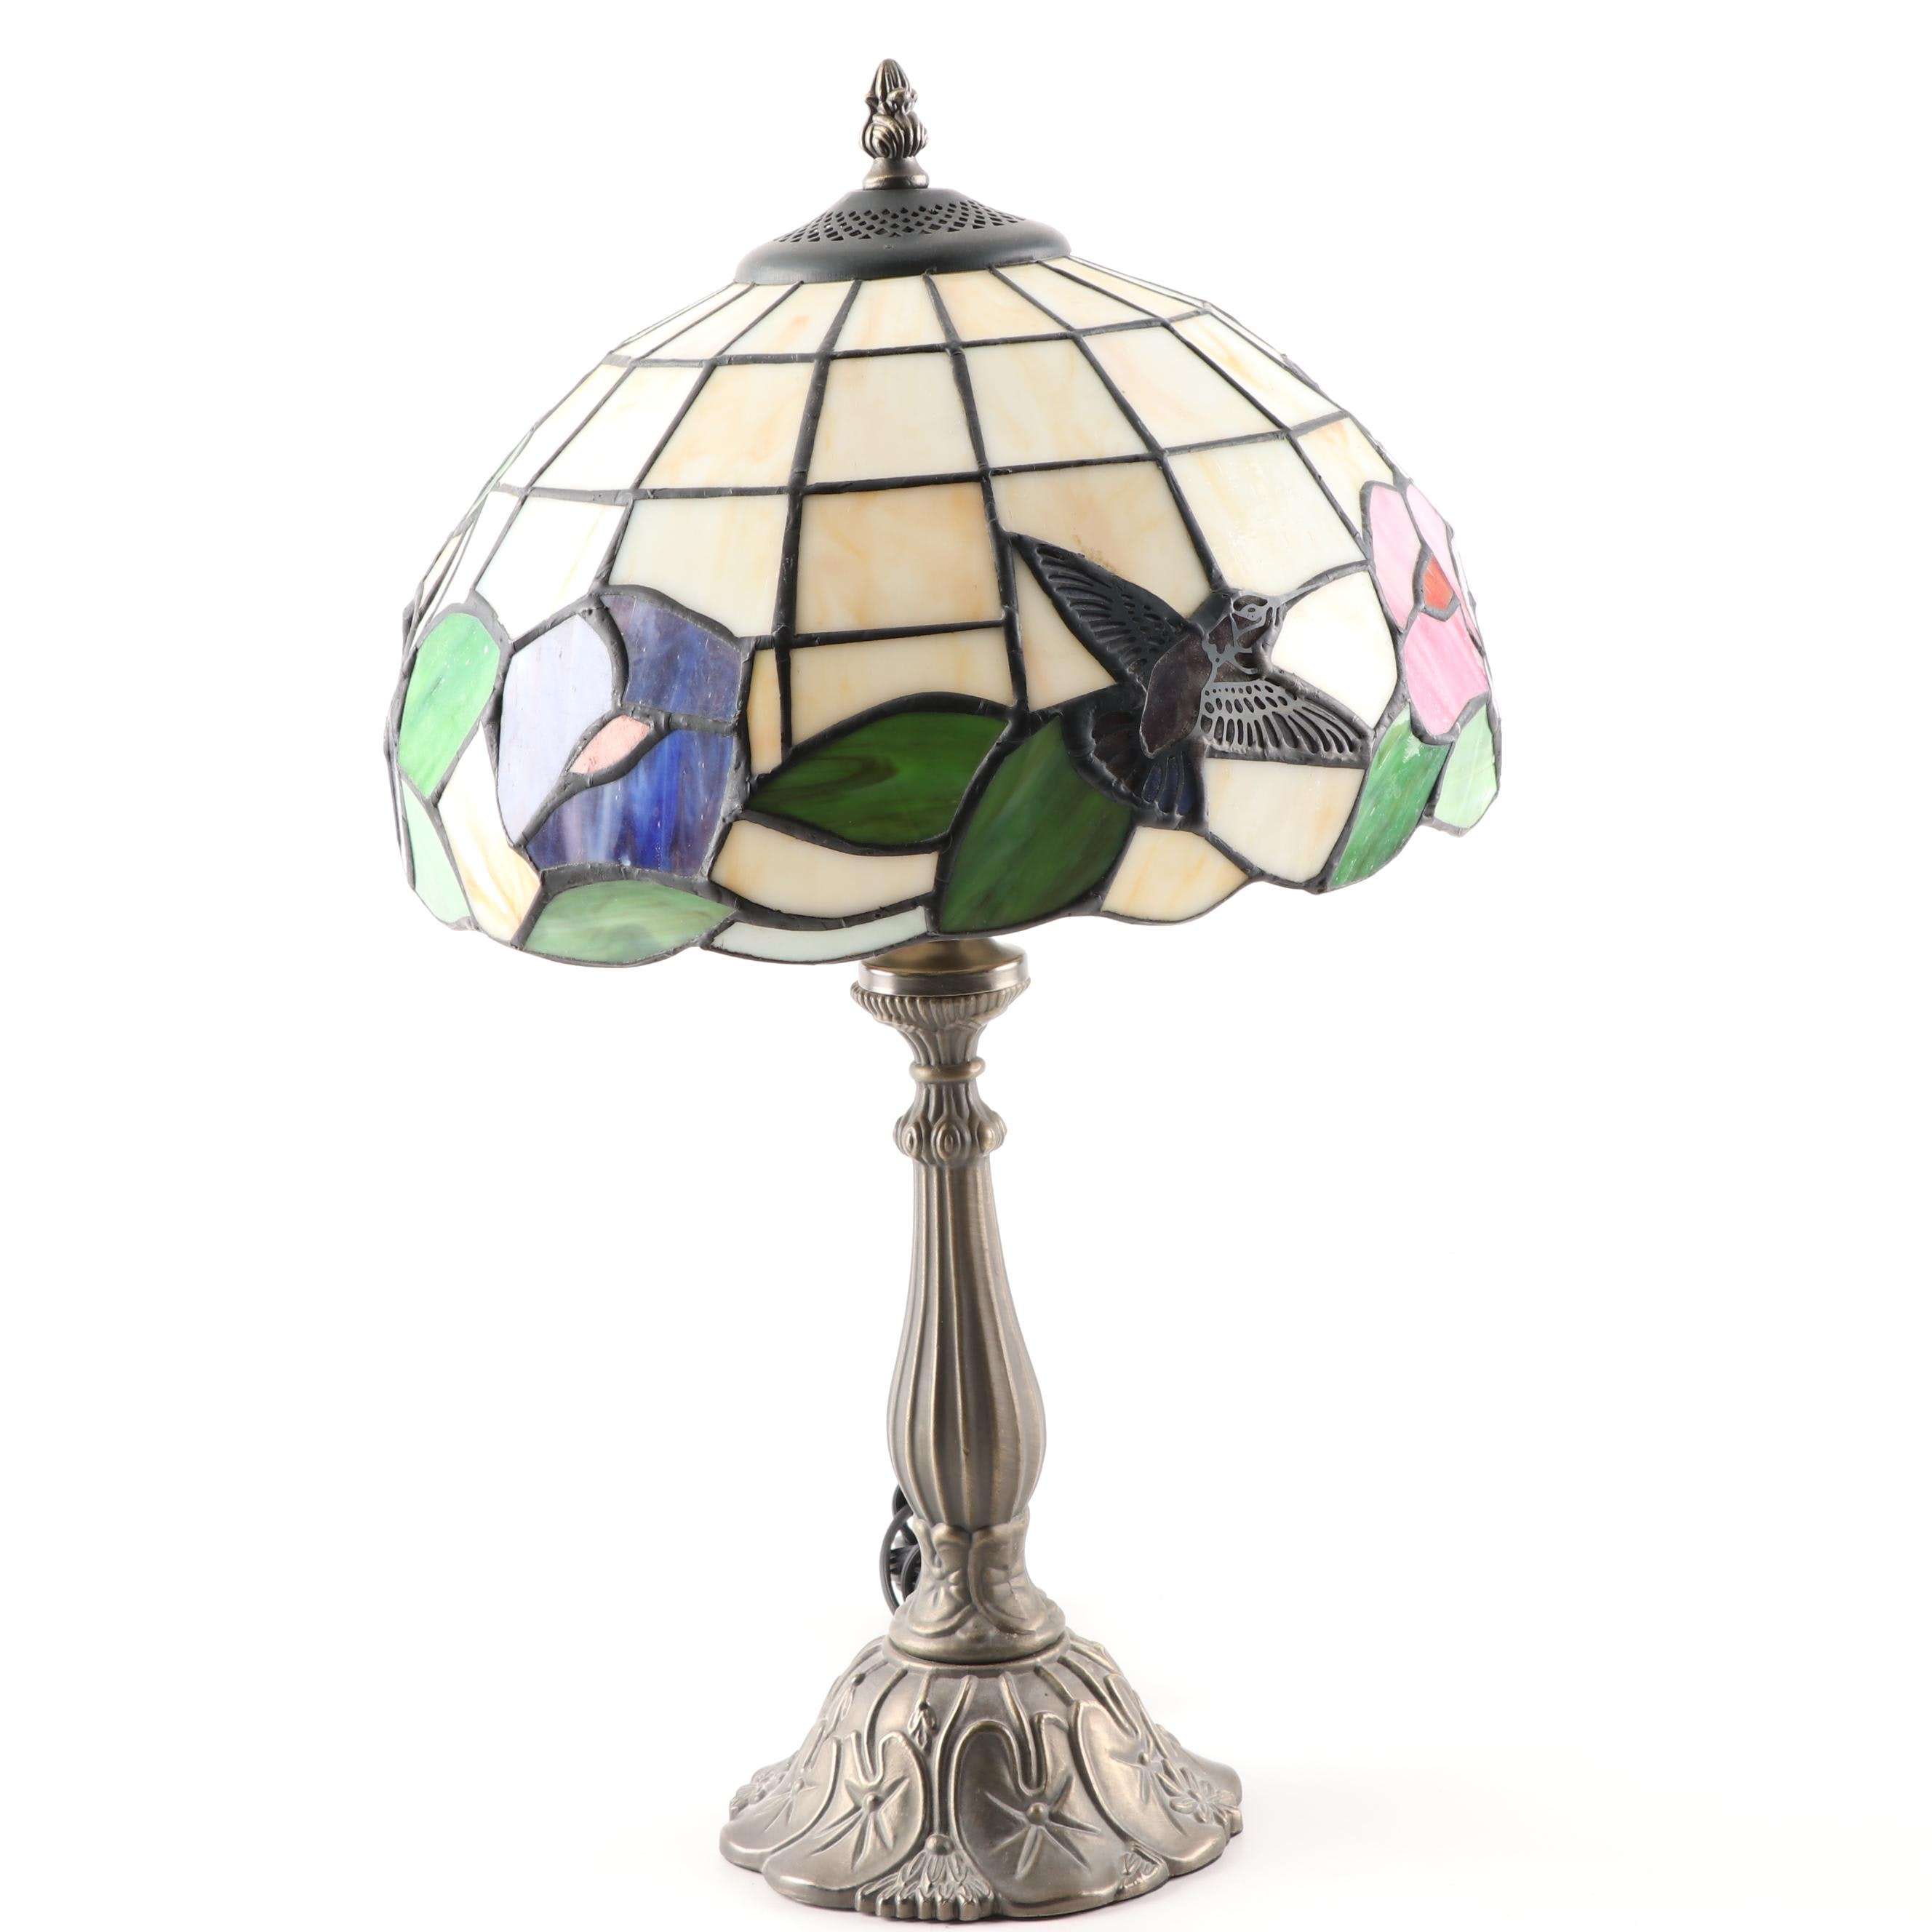 Cast Metal Table Lamp with SLag and Stained Glass Shade, Contemporary